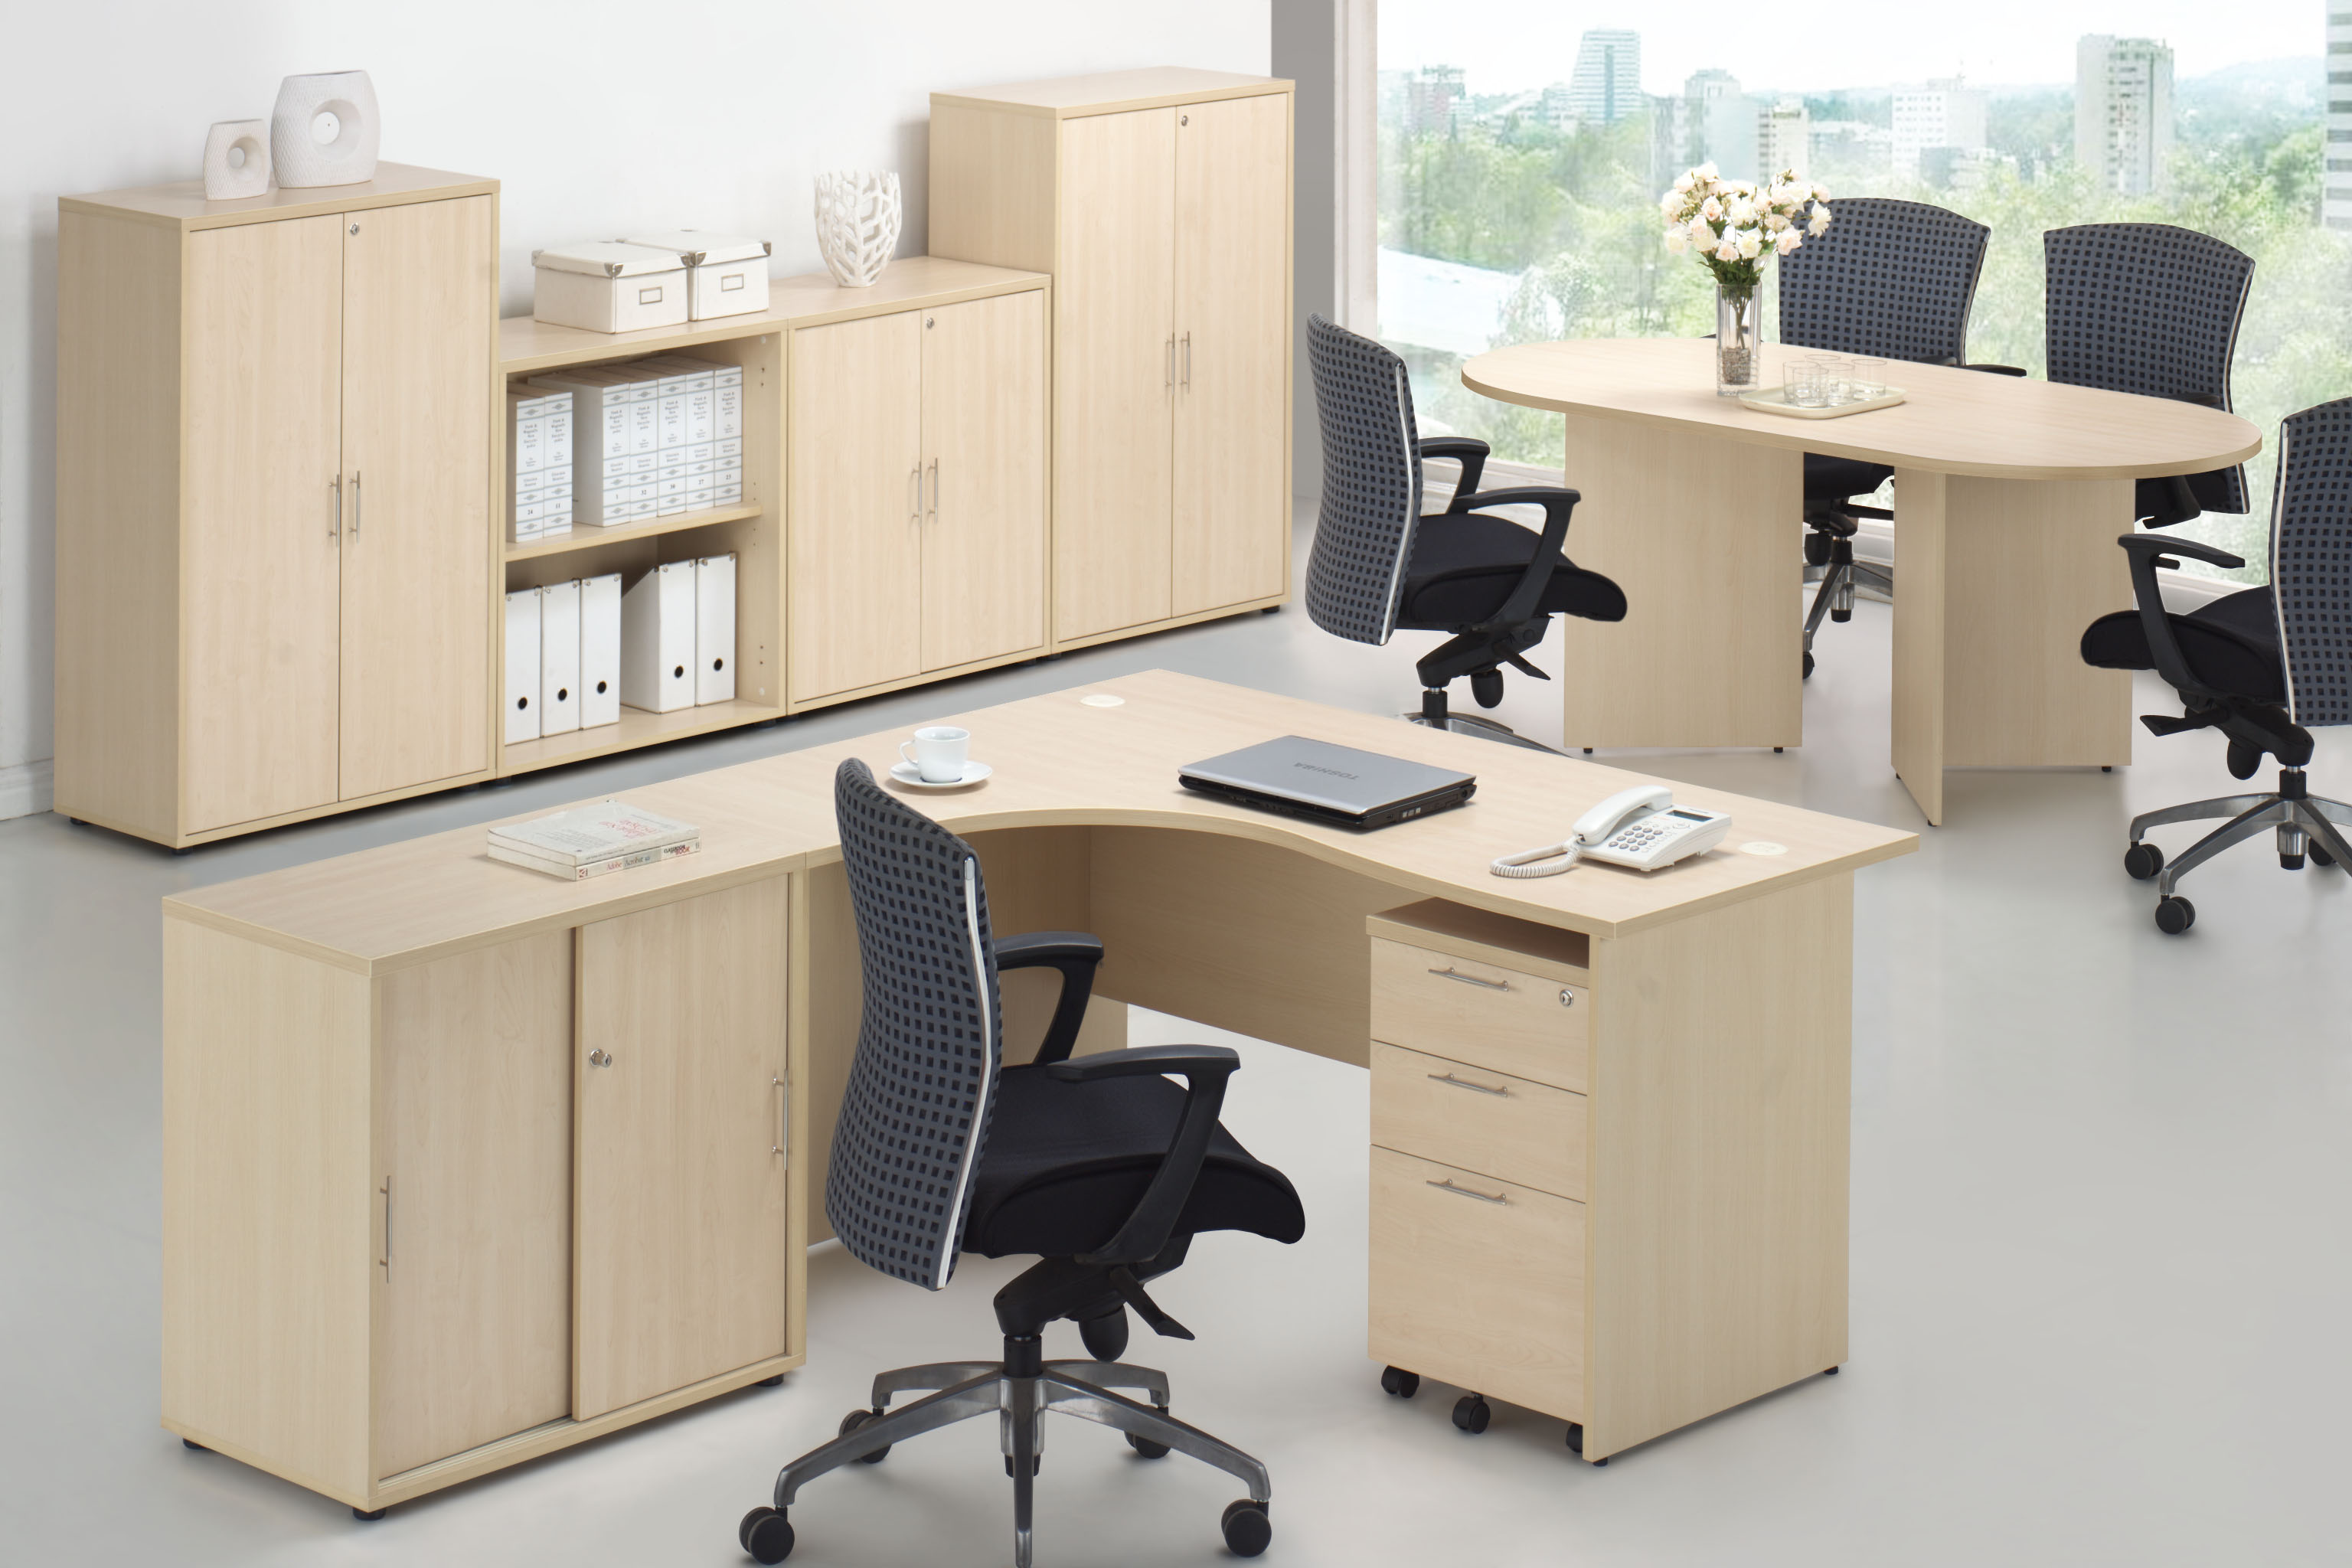 color office chairs. Dimensions Catalogue · Maple Wood Color Office Furniture Chairs